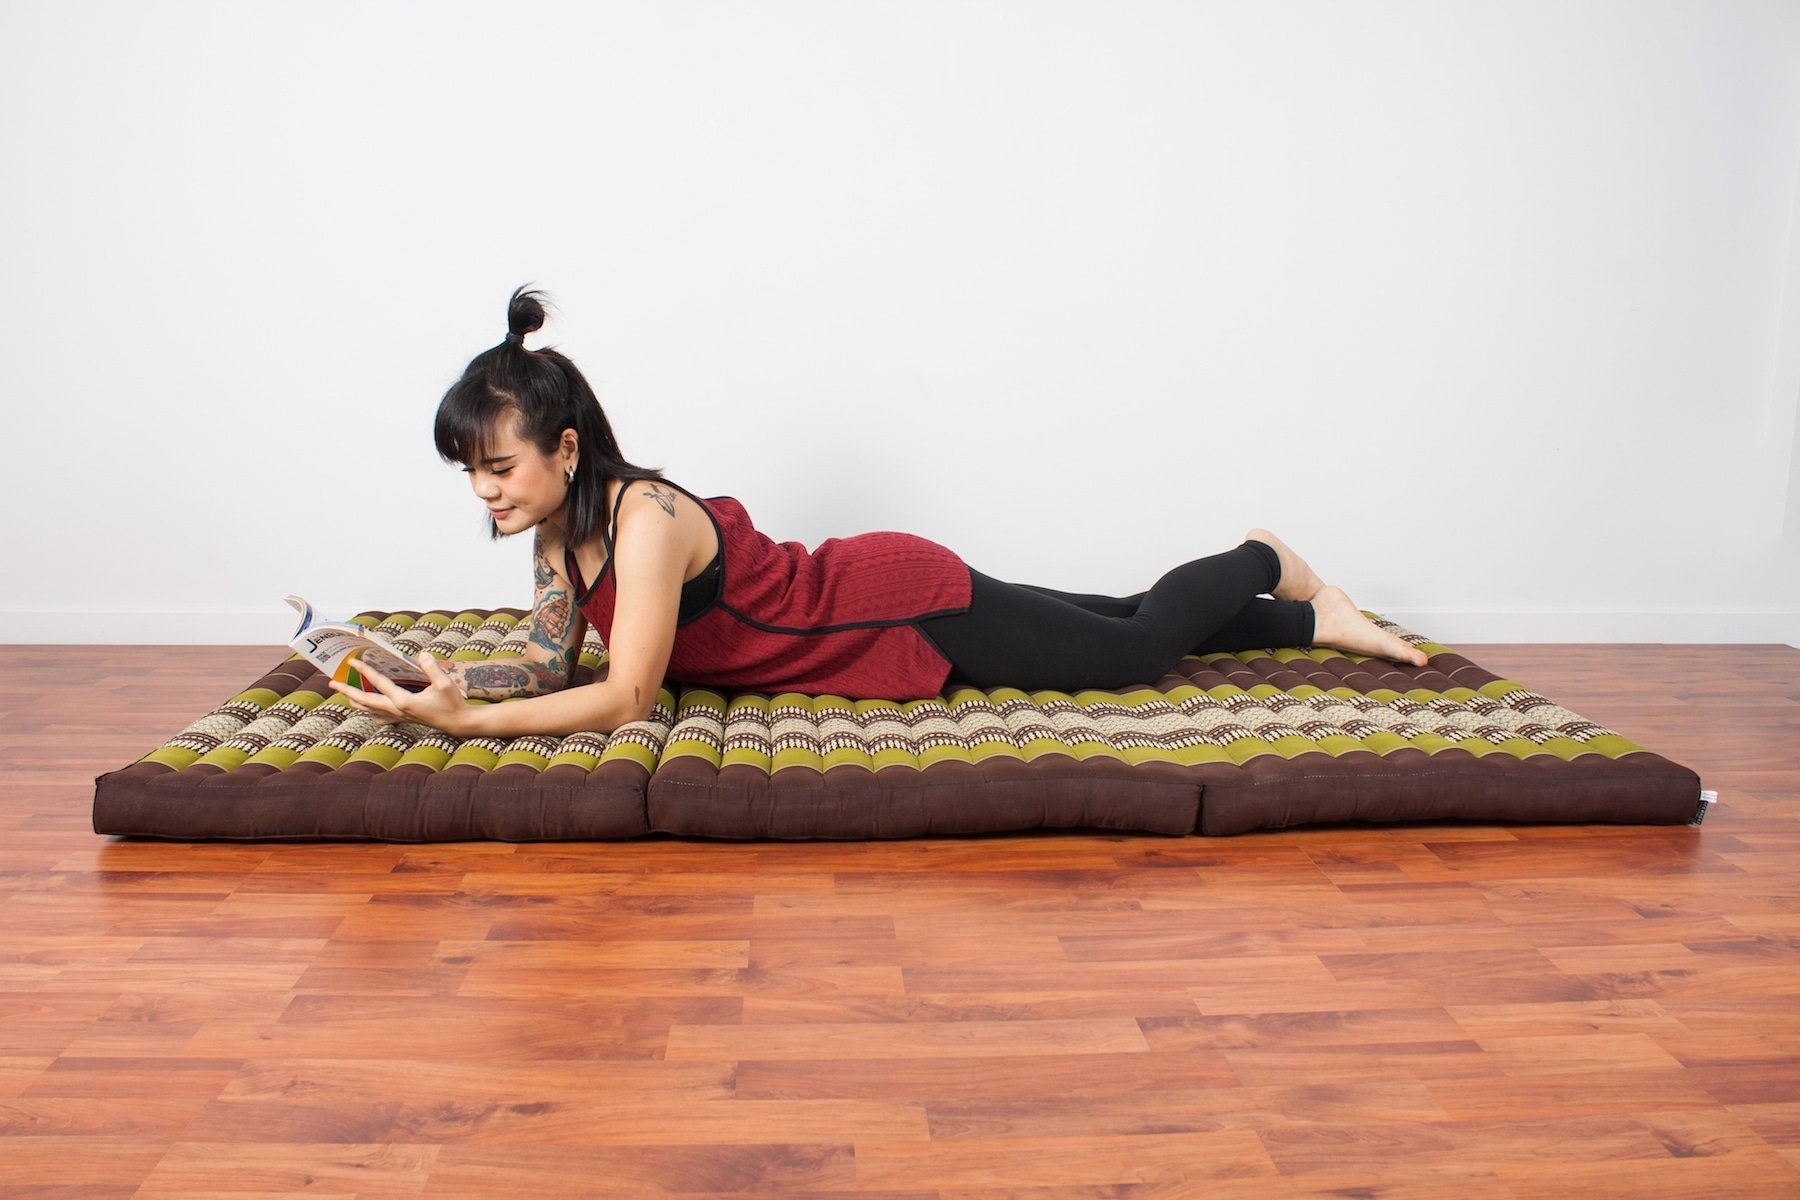 Leewadee Thai Massage Mat XL, 82x46x3 inches, Kapok, brown green by Leewadee (Image #6)